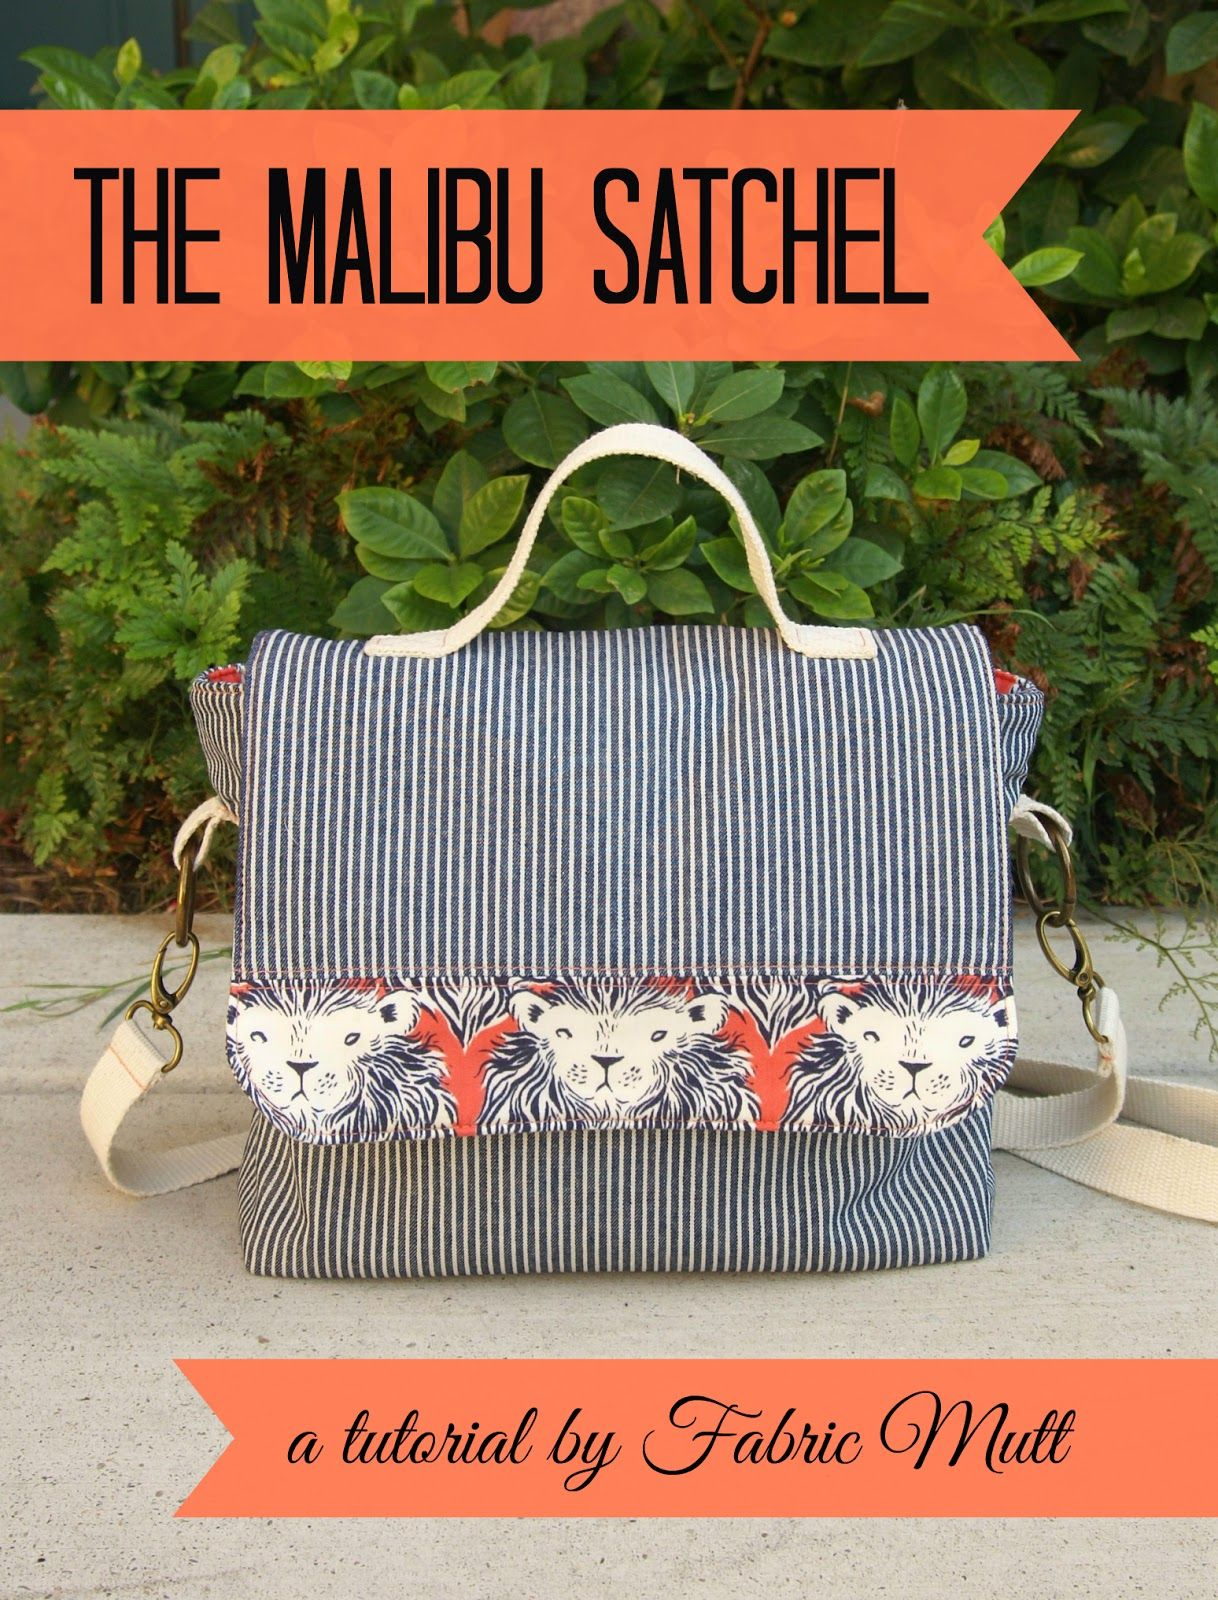 The best free messenger bag patterns satchels tutorials and fabrics malibu satchel tutorial free sewingsewing bag patterns jeuxipadfo Gallery